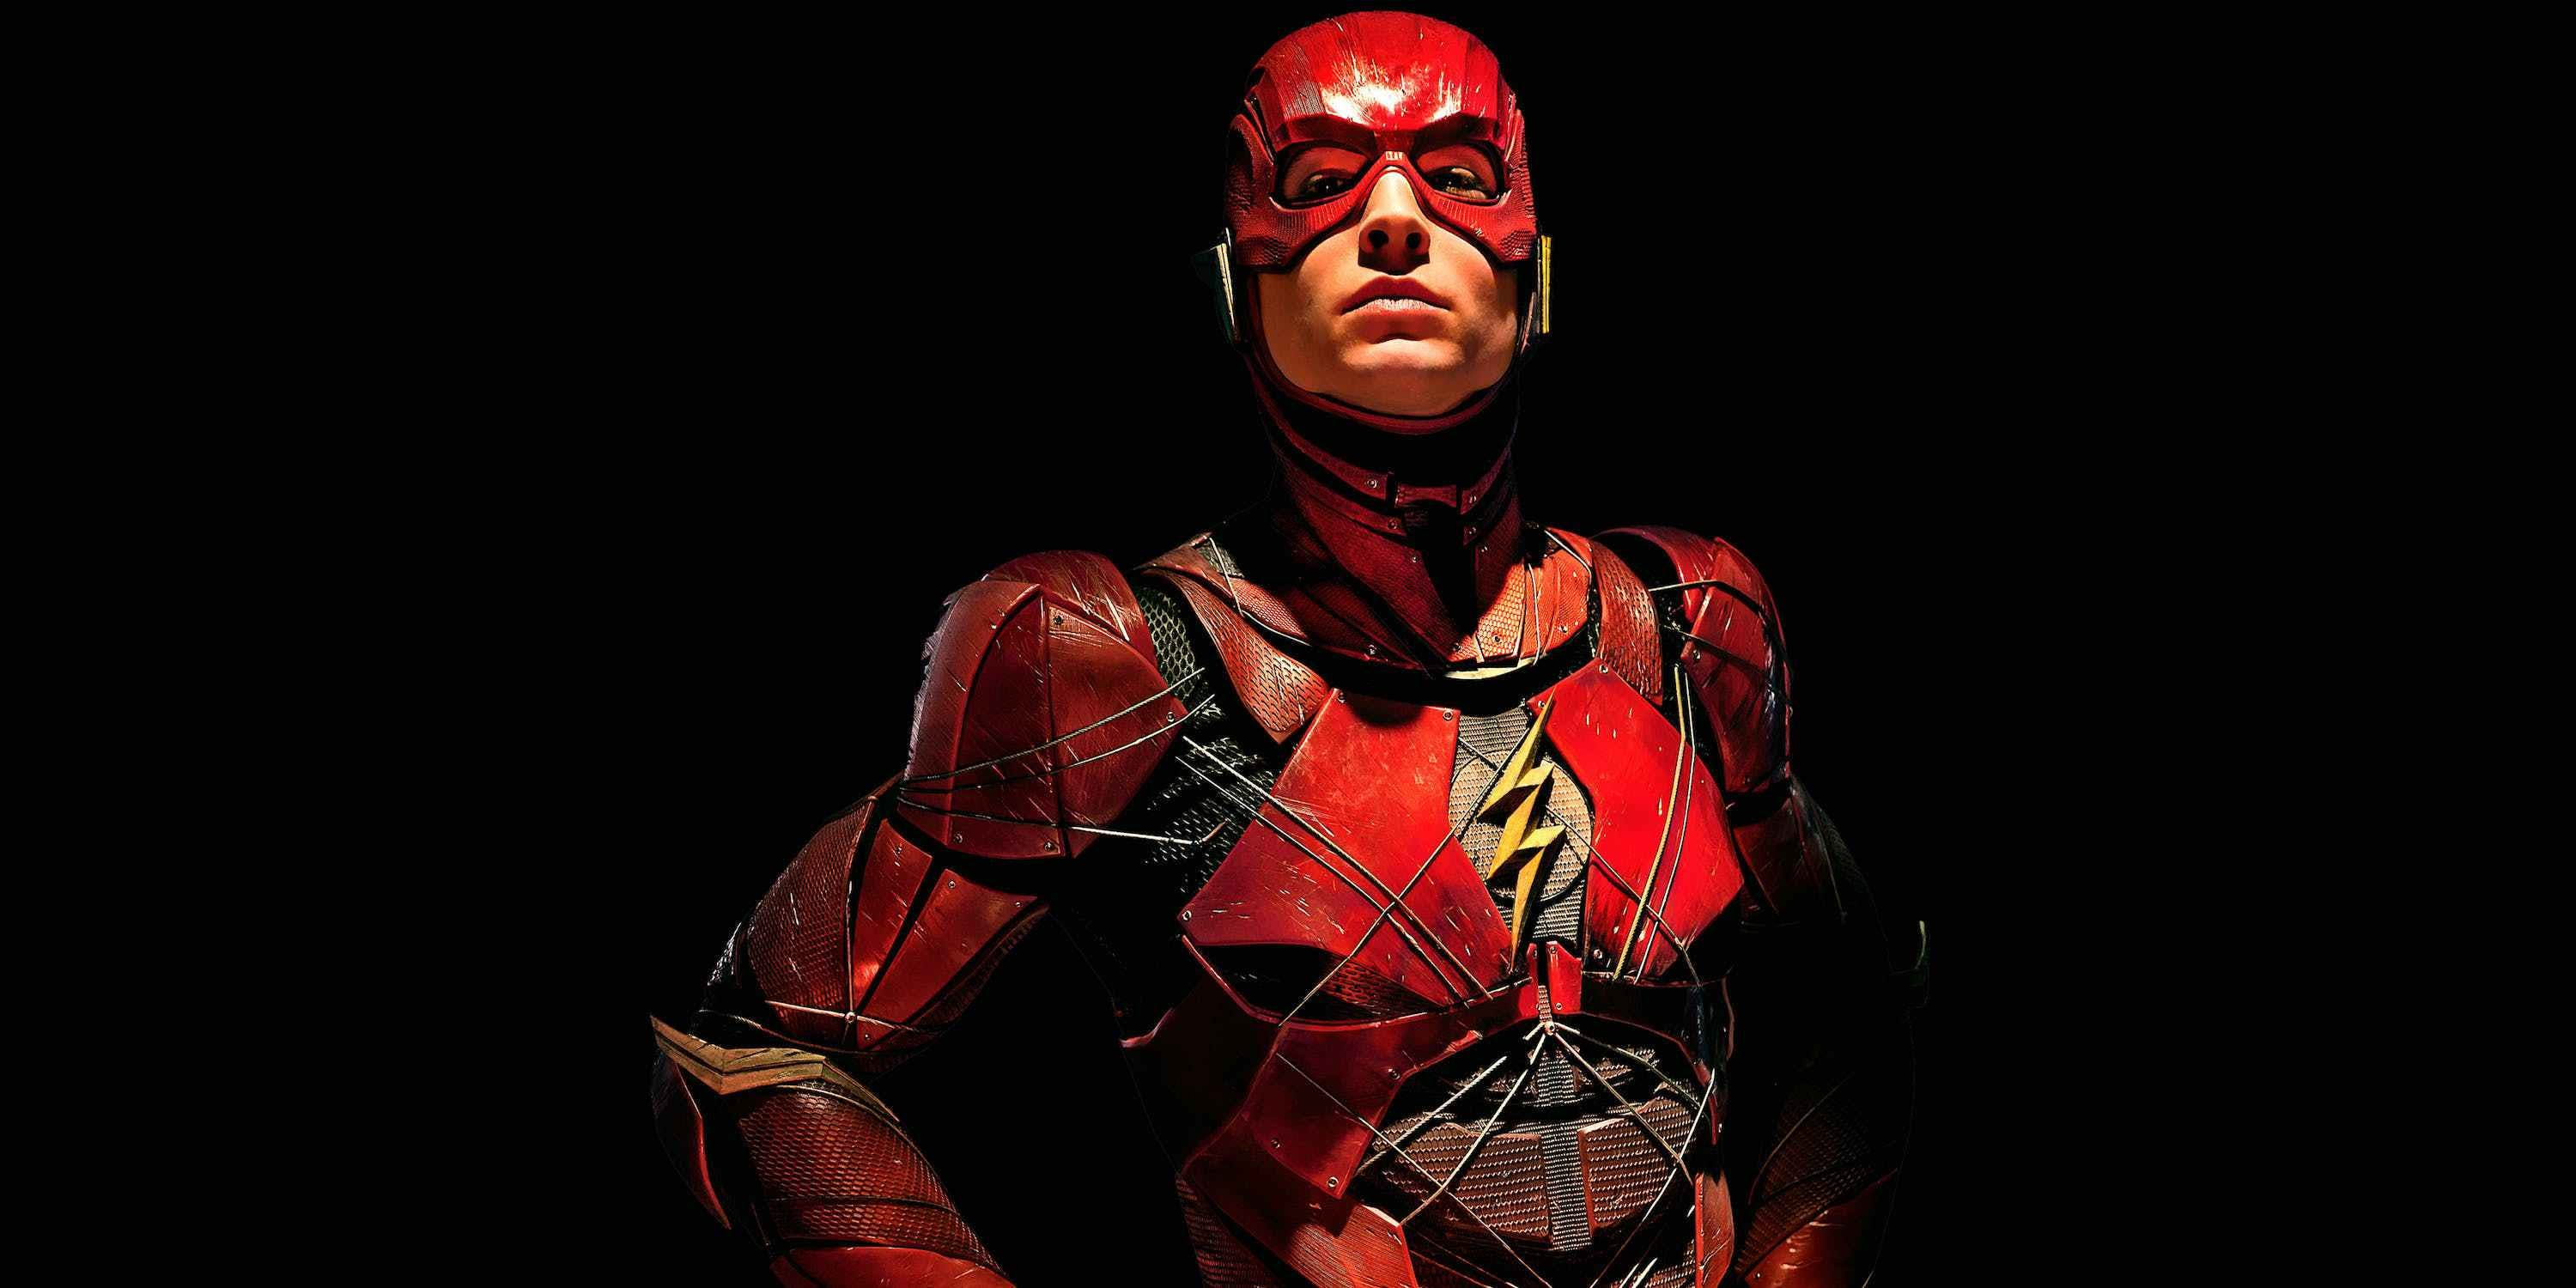 flash barry allen dc comics super hero hd background wallpaper